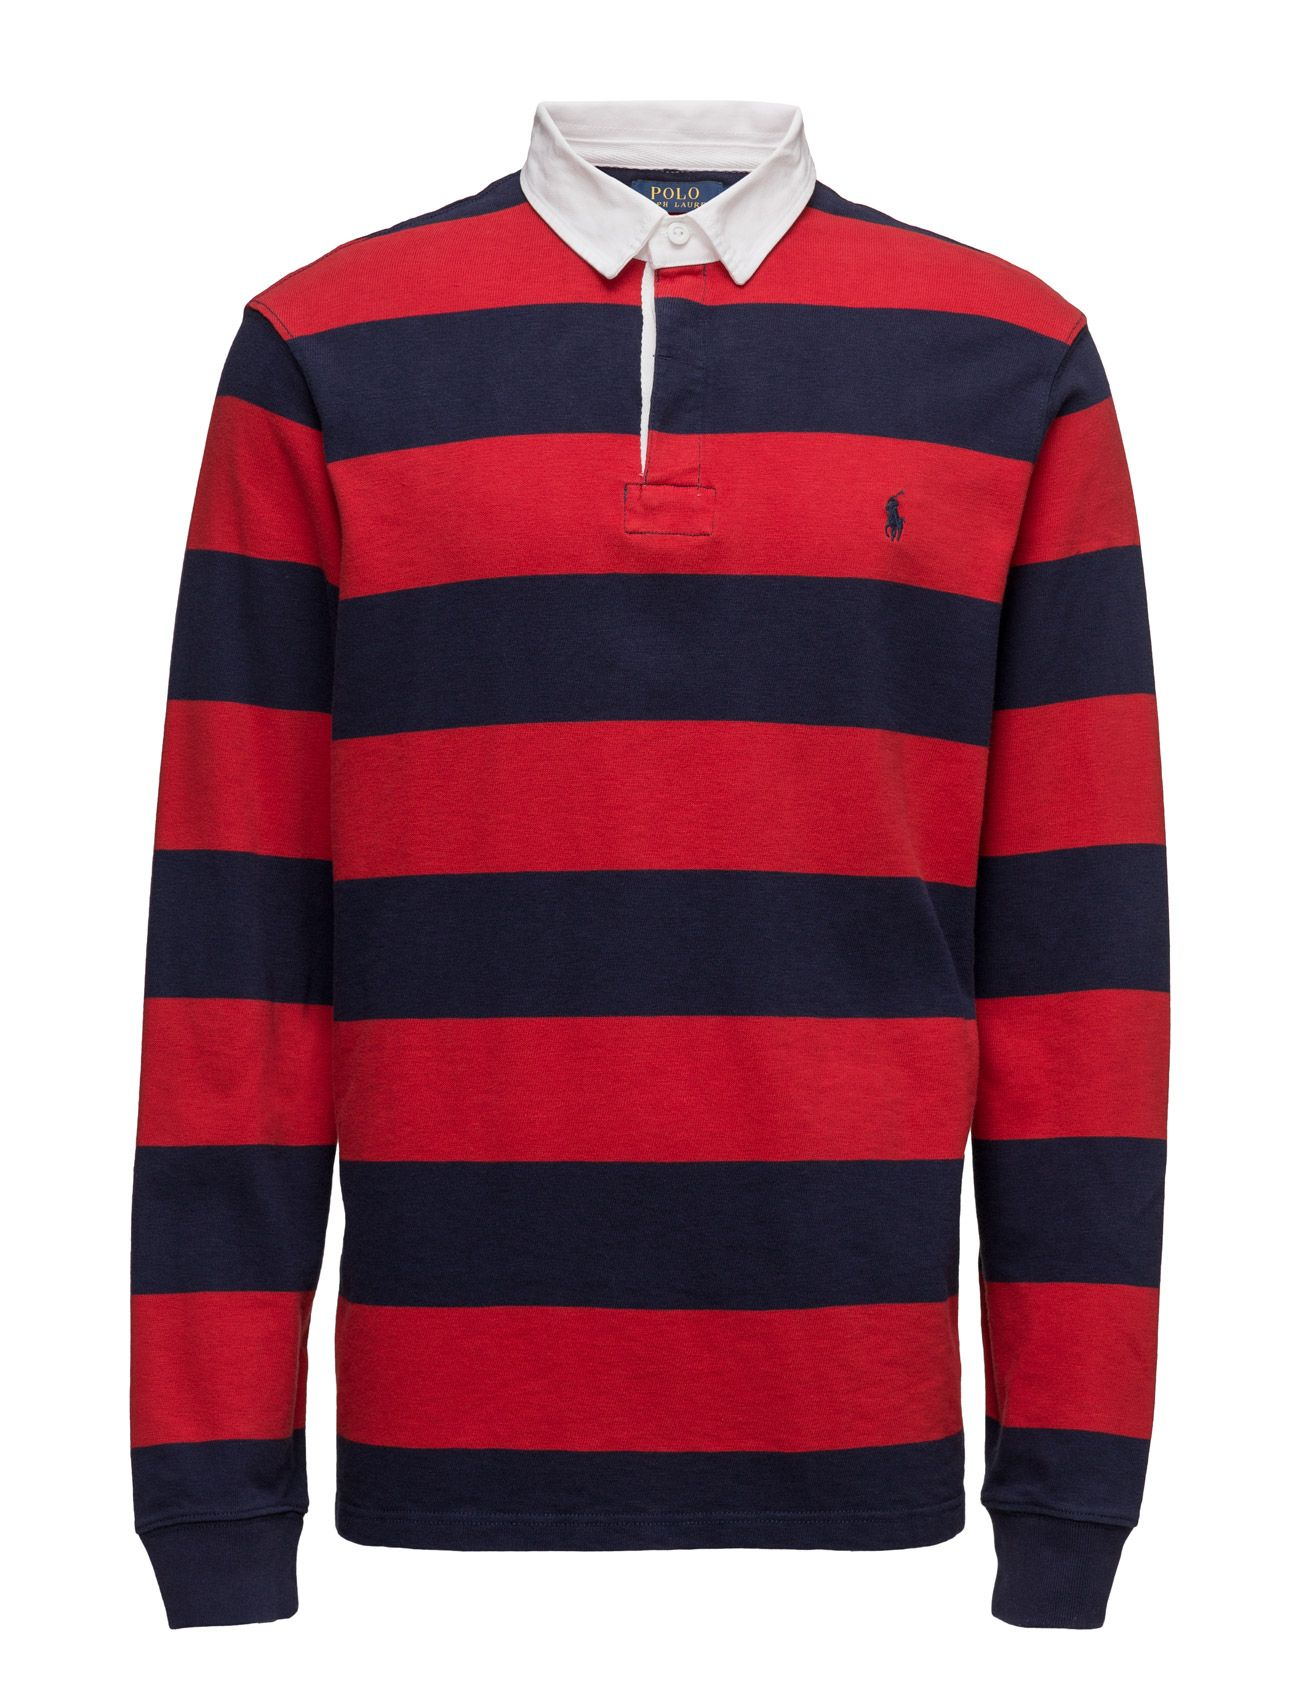 11c5b94196 polo ralph lauren the iconic rugby shirt french navy/rl 20 men tops shirts  long-sleeved,ralph by ralph lauren,Authorized Site, ralph lauren size chart  ...